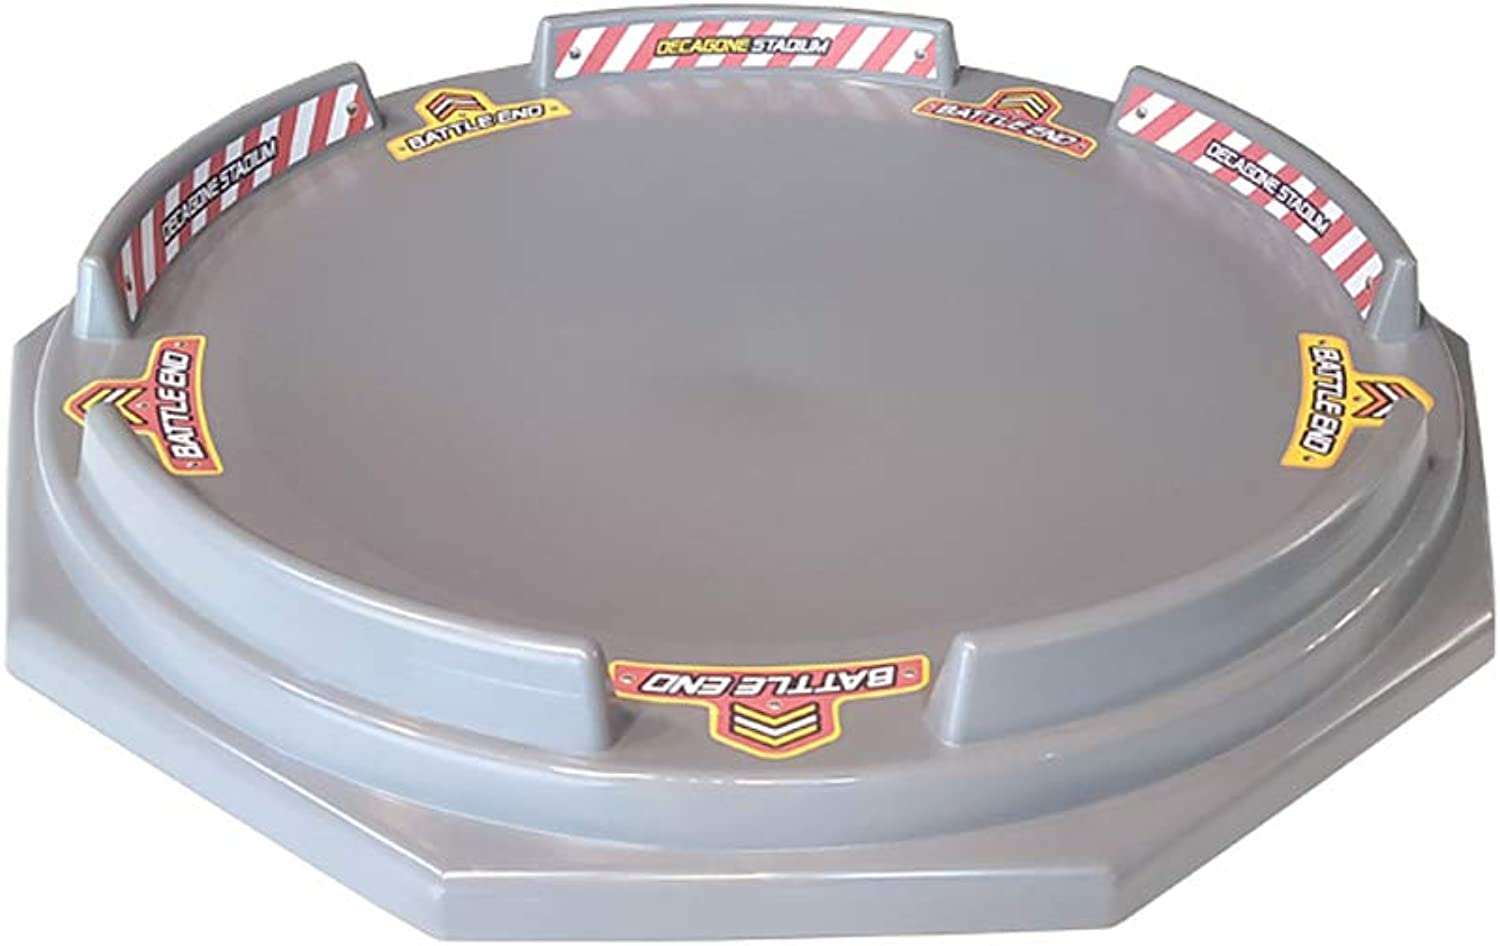 Beyblade Large Size Stadium Beyblade Arena for Battling Top, 25.7  x 24.6  x 3